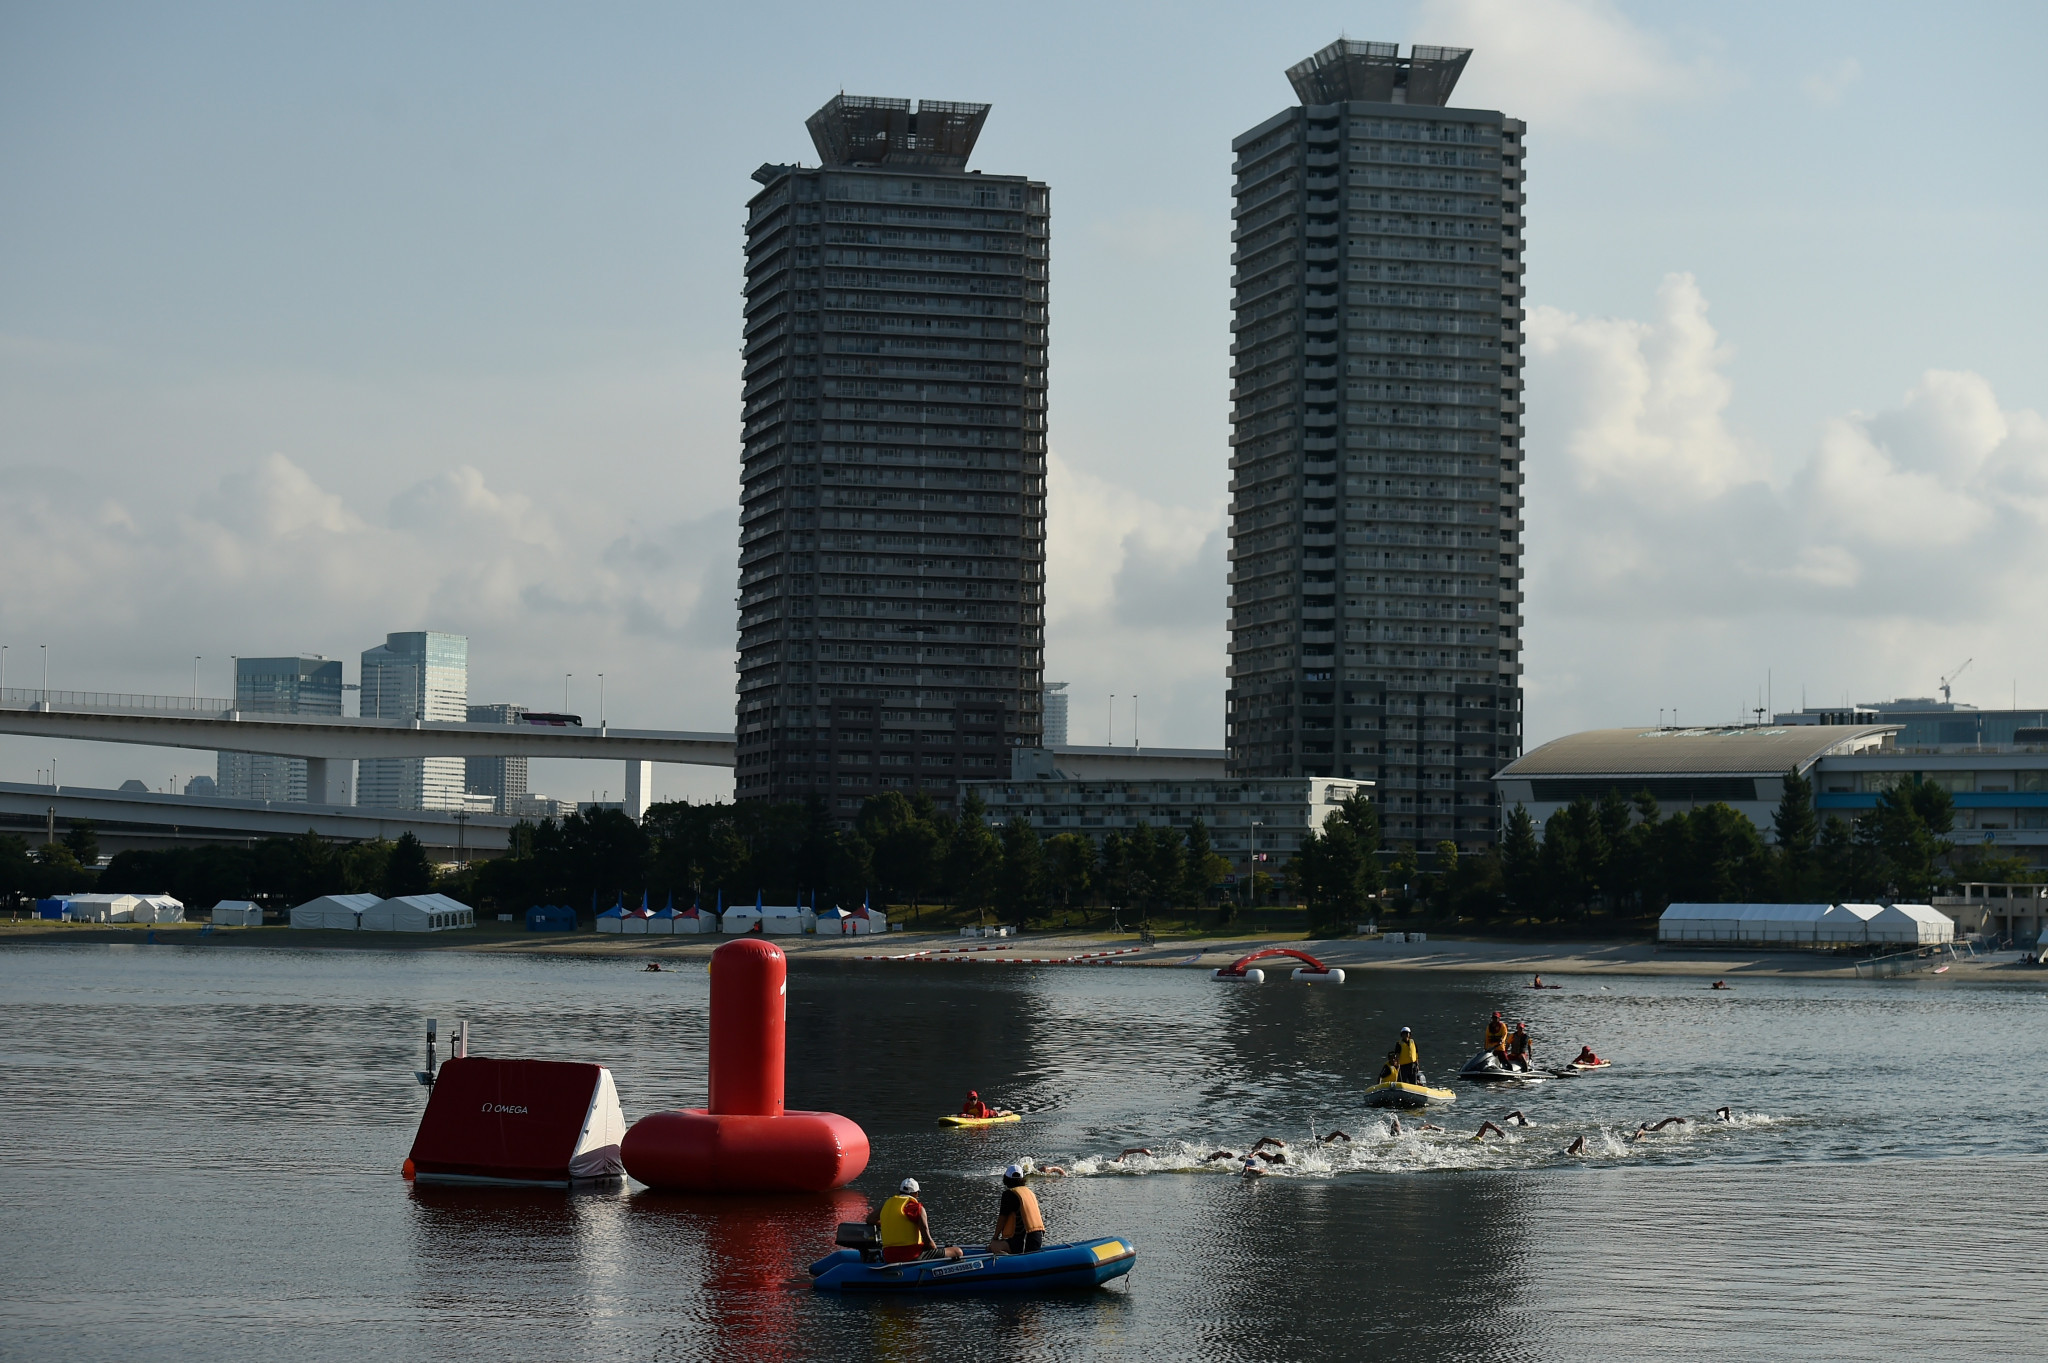 The Summer International Federations have expressed satisfaction overall with preparations for next year's Olympic Games in Tokyo but fears remain over things like water pollution ©Getty Images